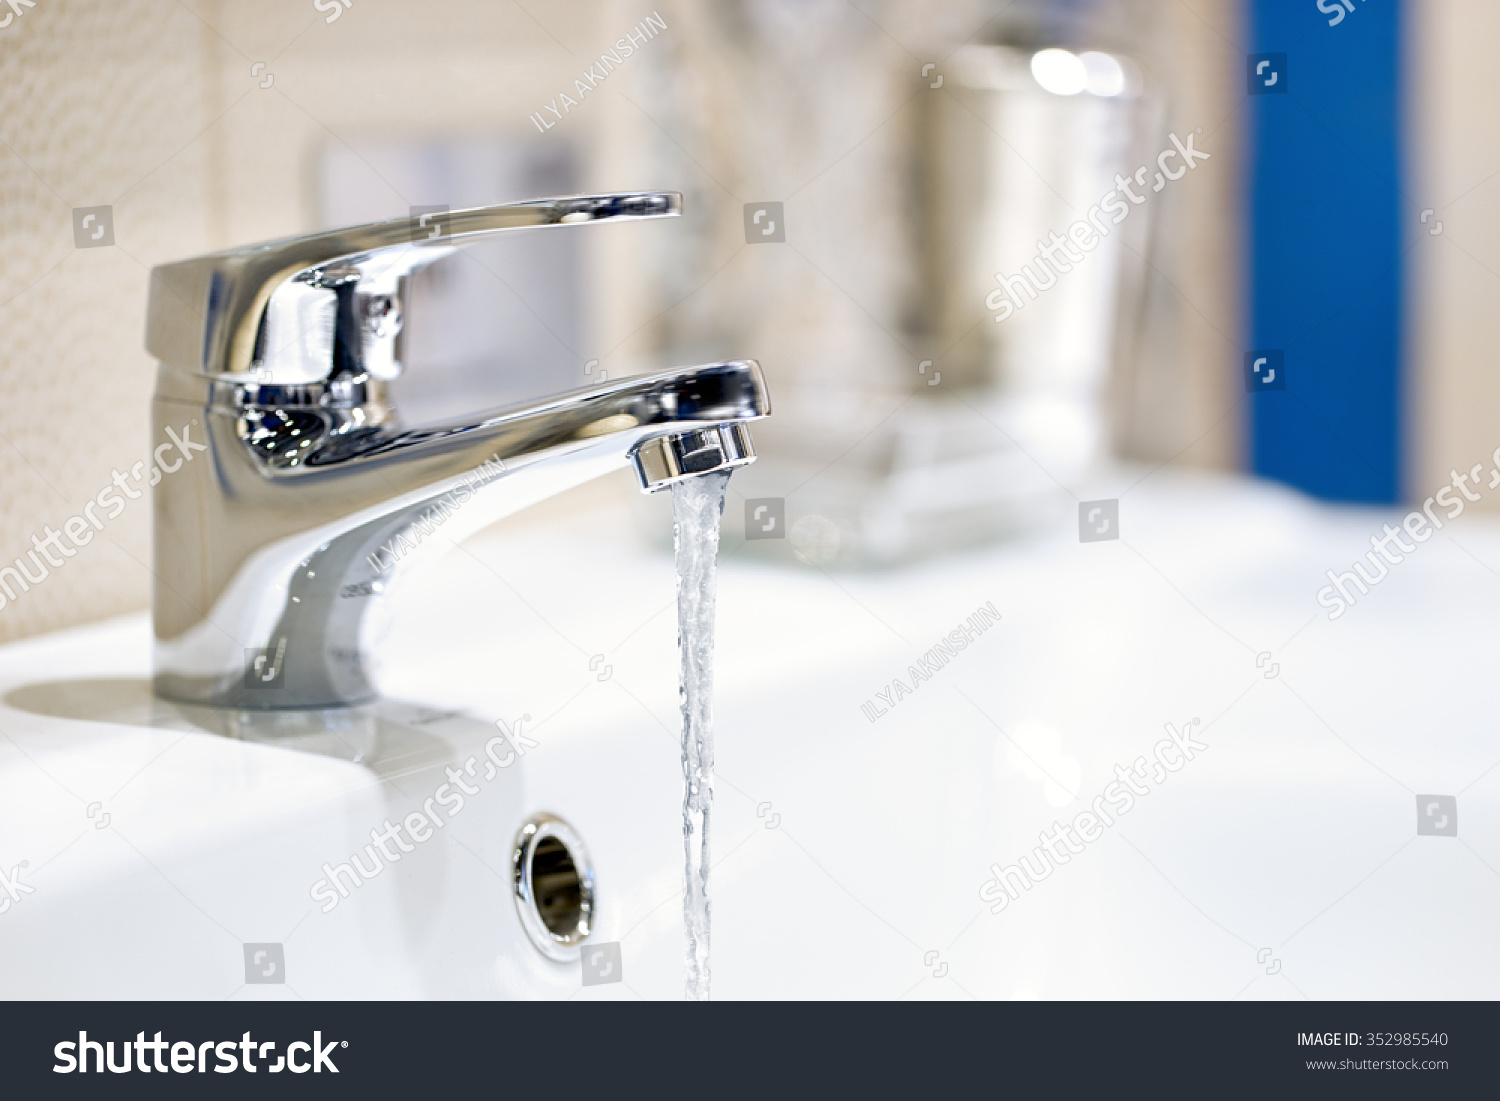 Faucet Water Flow Stock Photo (Royalty Free) 352985540 - Shutterstock